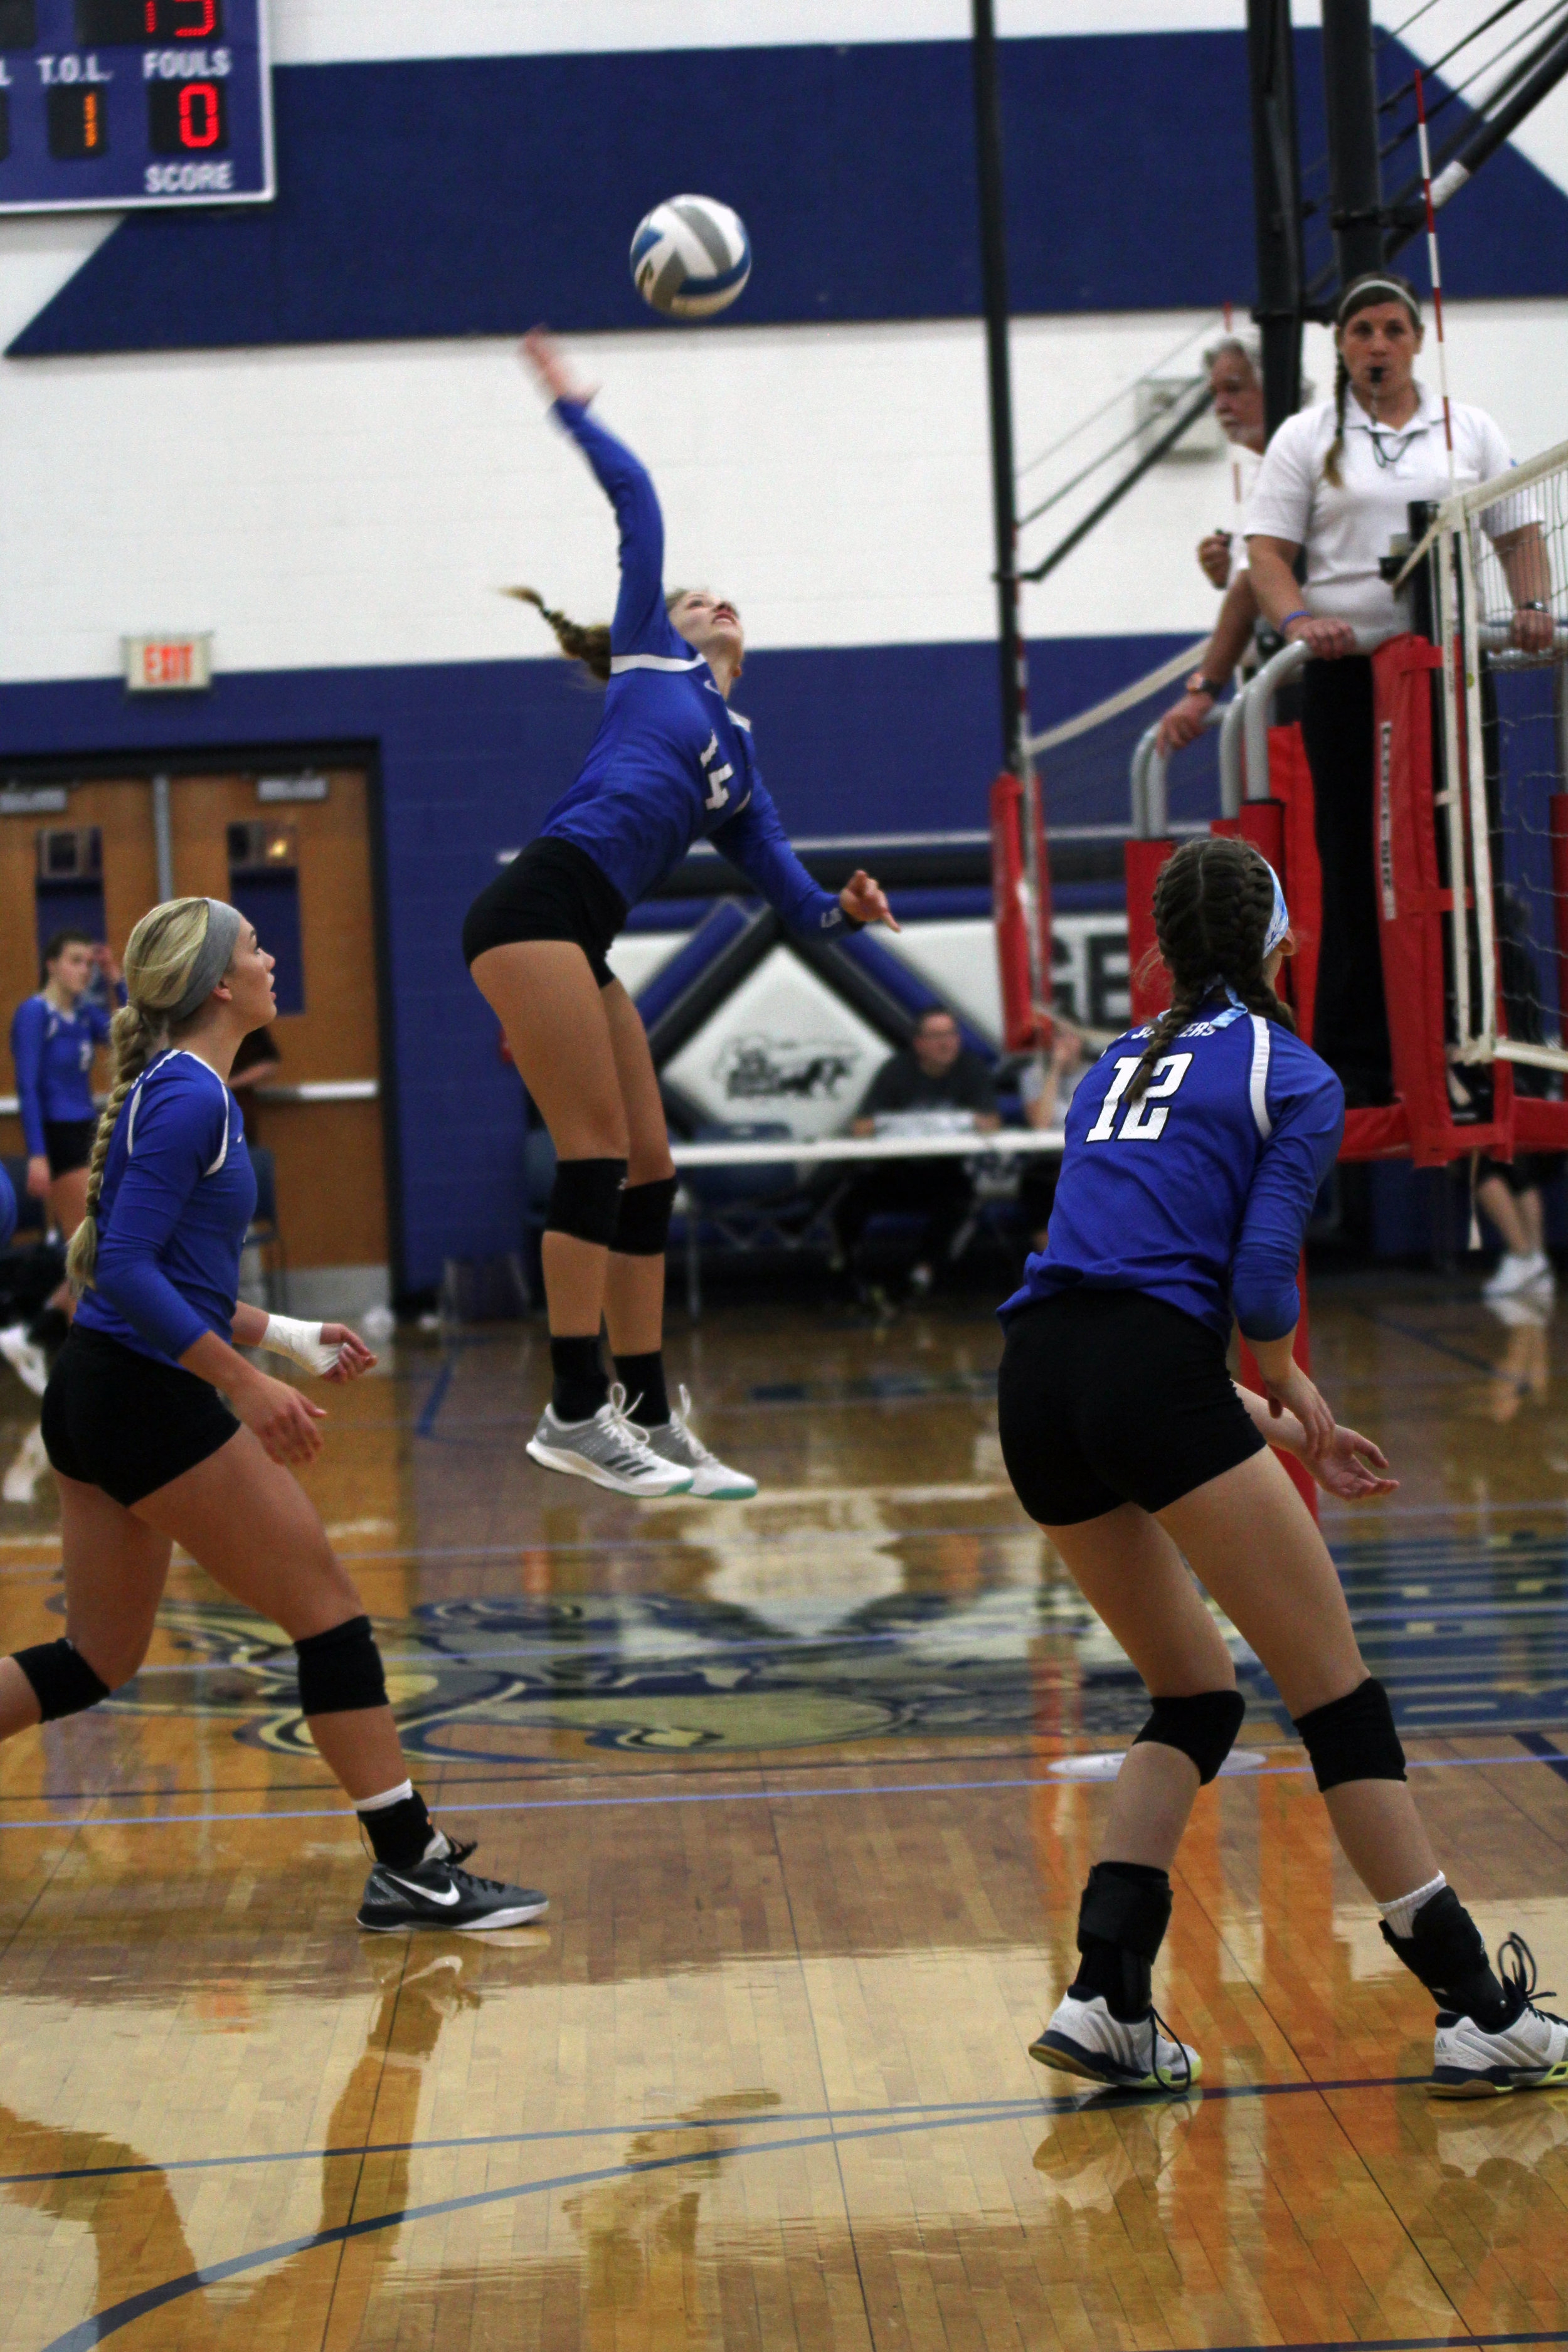 volleyball_20170919jaquicarey_0058 page.jpg